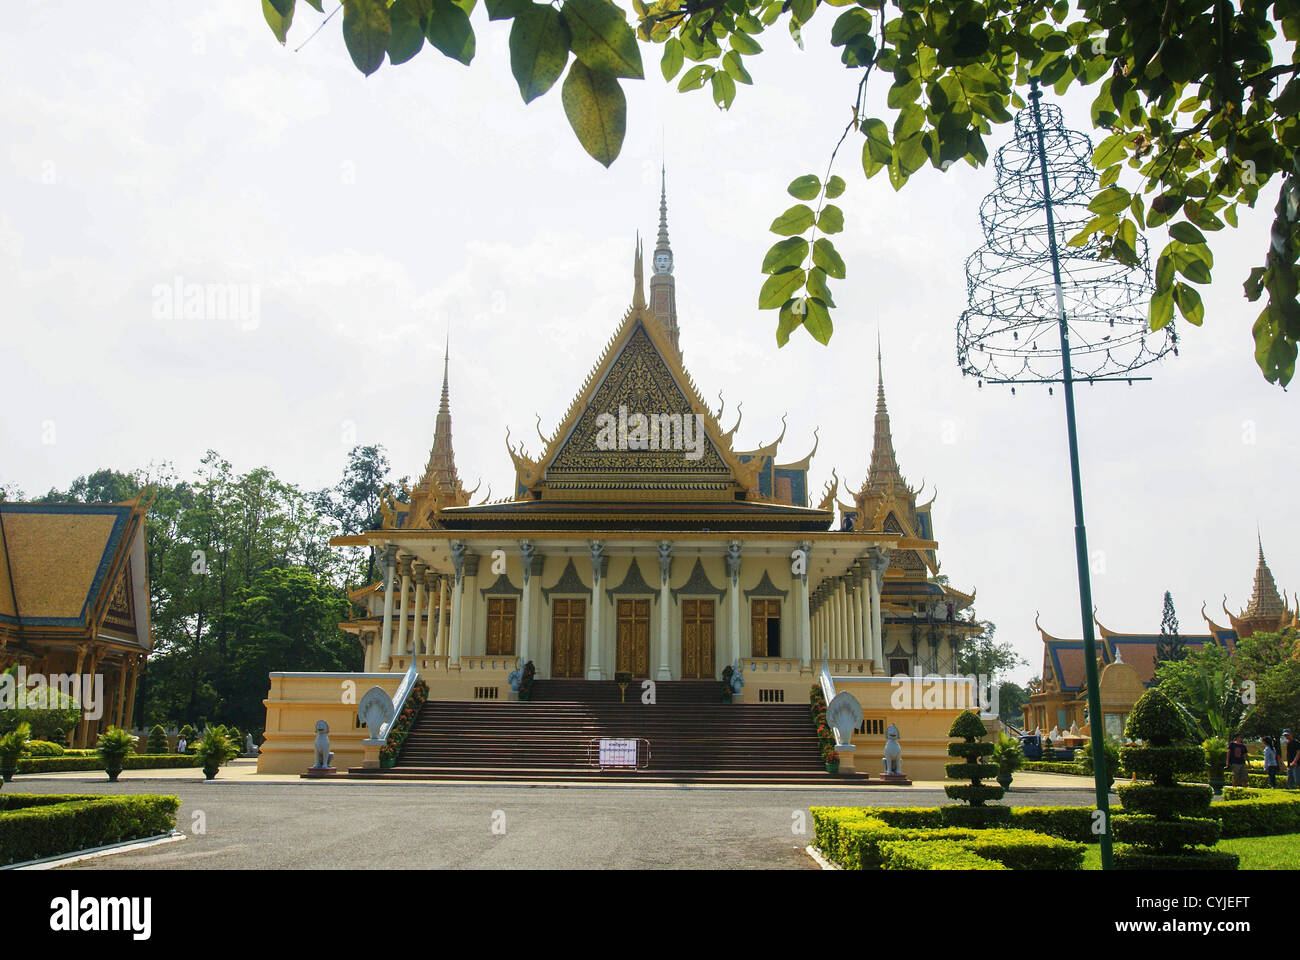 Cambodia, Phnom Penh, Royal Palace, Throne Hall - Stock Image